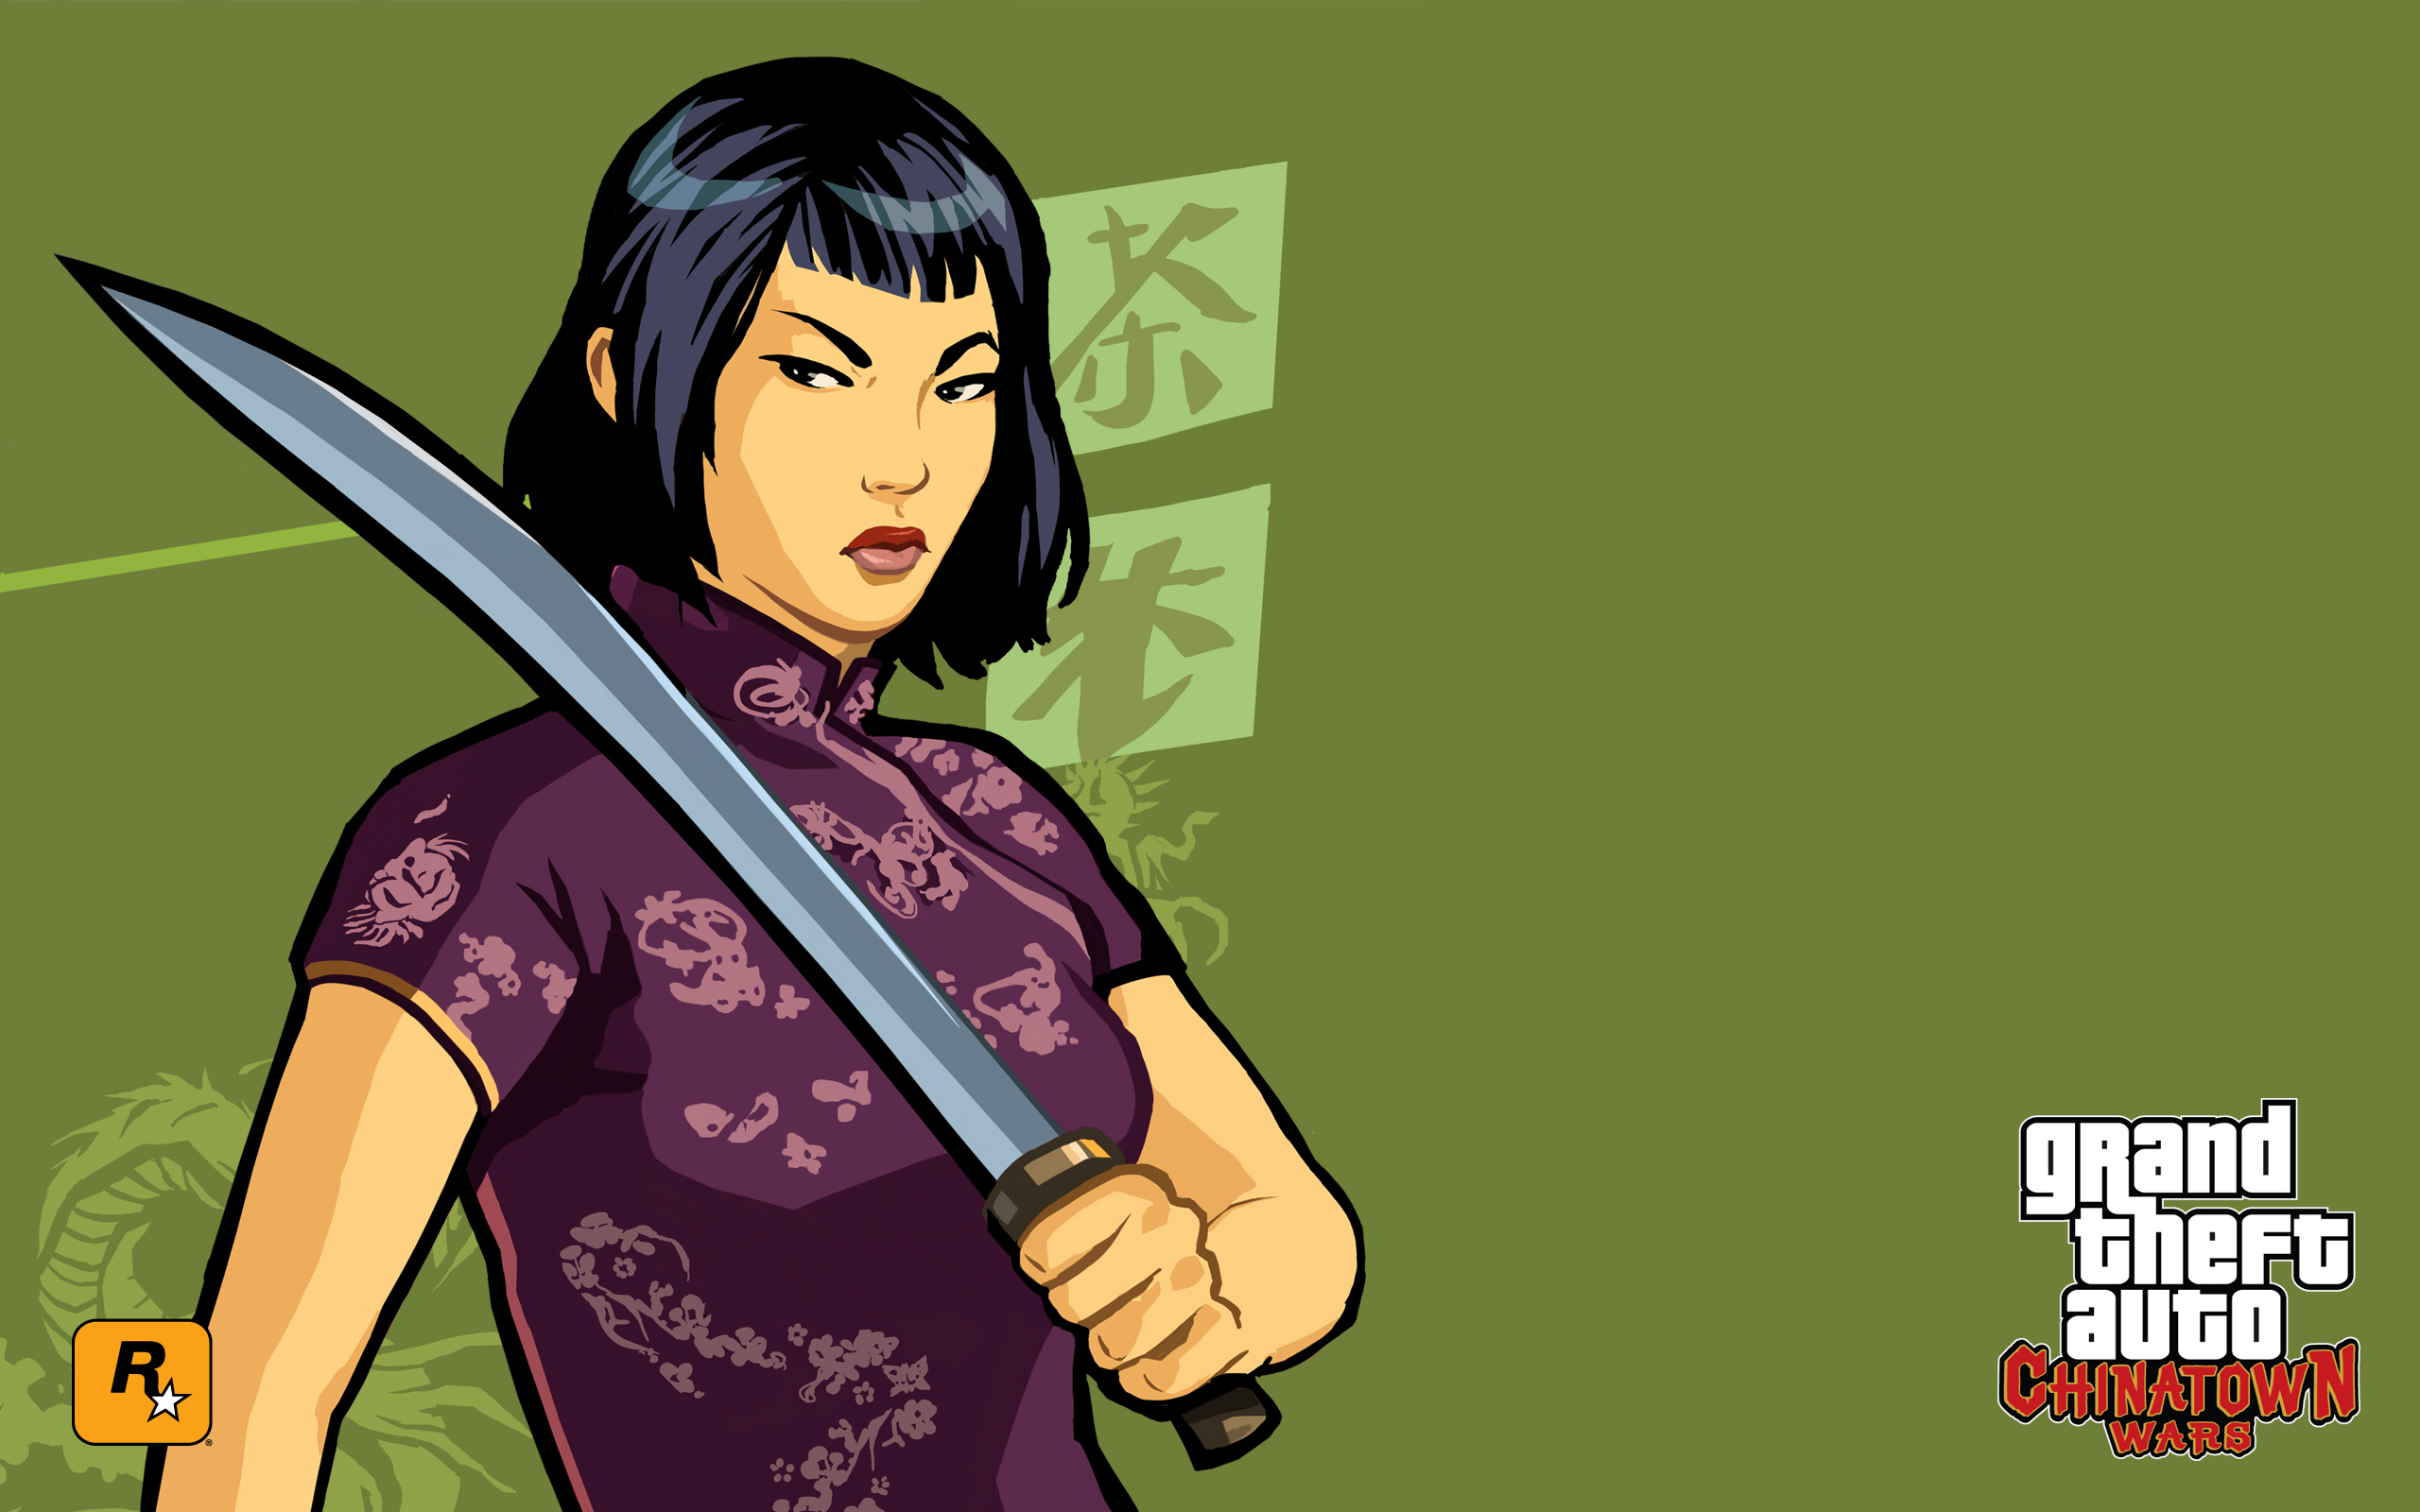 Grand Theft Auto: Chinatown Wars High Quality Background on Wallpapers Vista